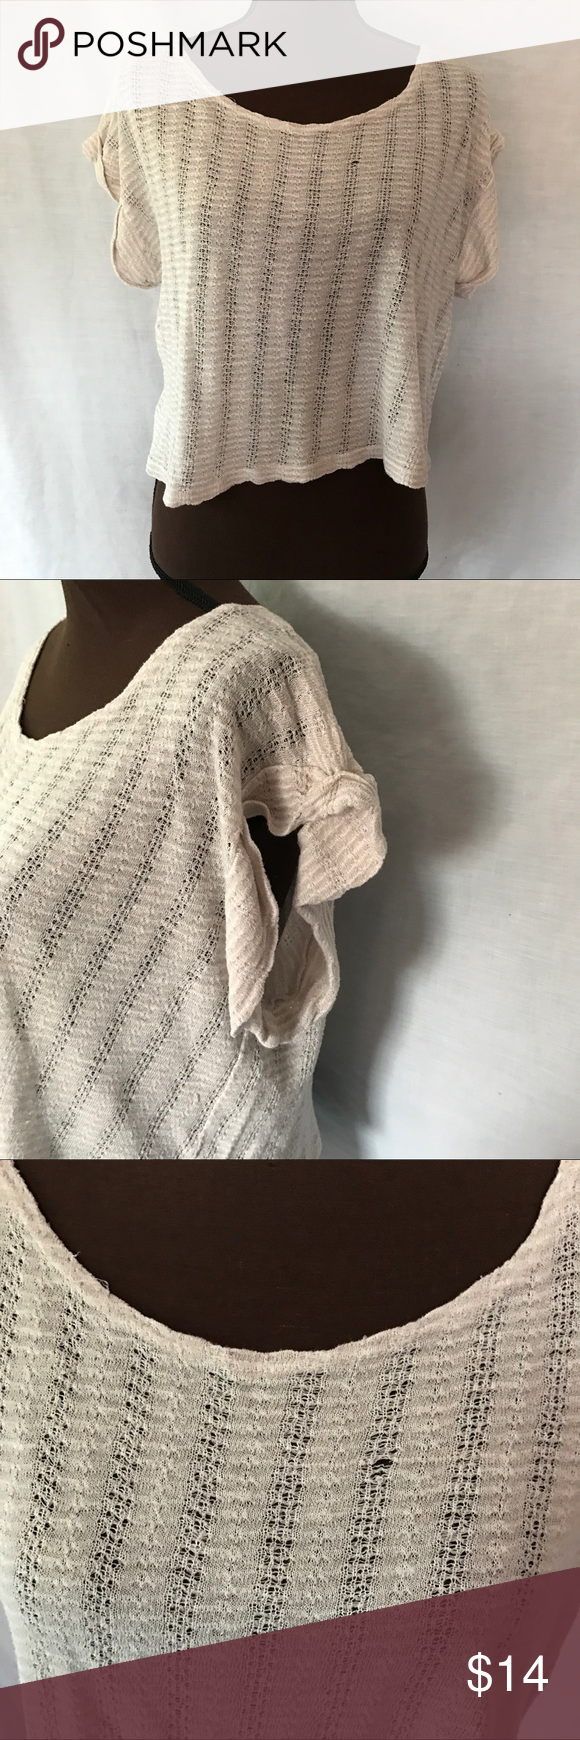 Off-White Cropped Knit Top Somewhat see-through, lightweight and cropped- great shirt for warm weather. There is one small hole, see pictures. Otherwise no visible flaws, EUC.   |✅20% Off Bundles| |✅Questions Welcomed| |✅Reasonable Offers| |⛔️Trades| |⛔️Offline Transactions| |Thrift is Sexy 💋👠 Olivia Moon Tops Crop Tops